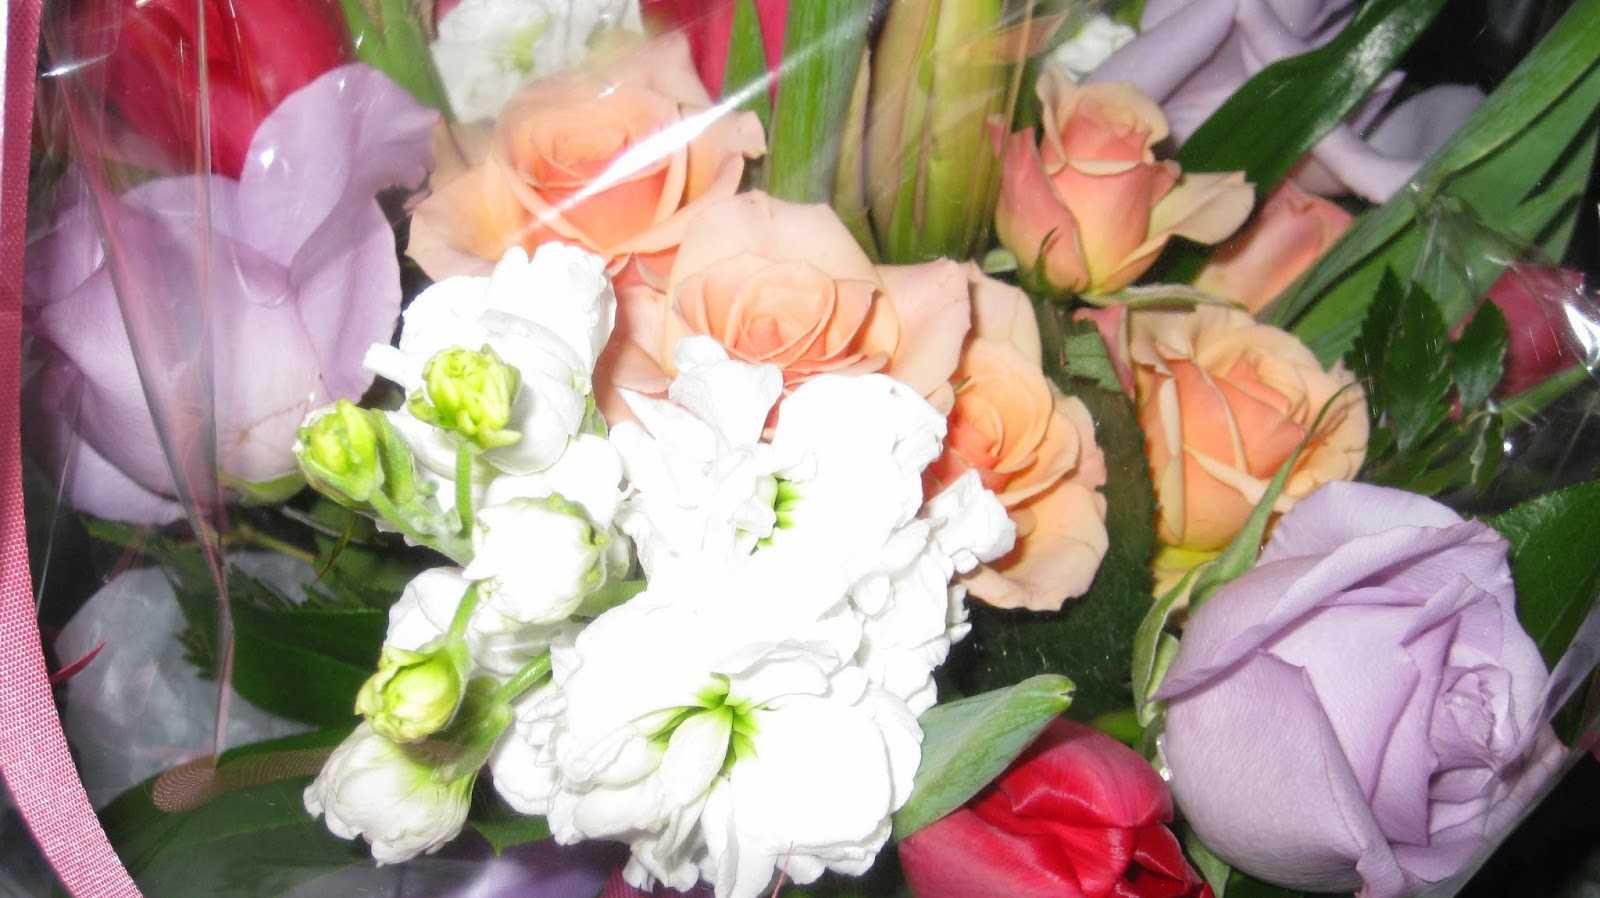 Precious Cooking Beautiful Happy Birthday Flowers To Adorn The